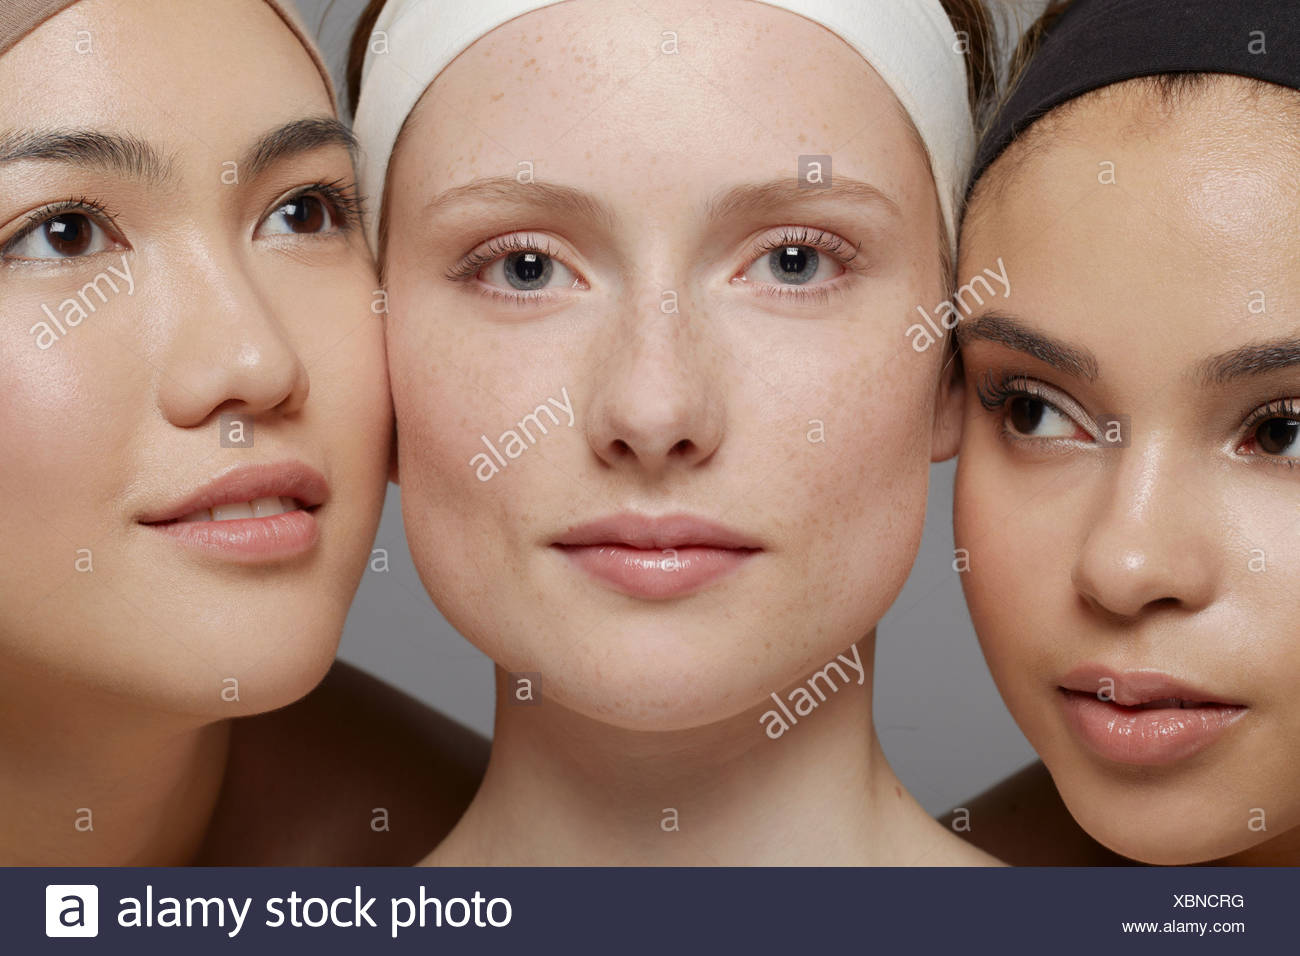 Beauty portrait of three young women Stock Photo